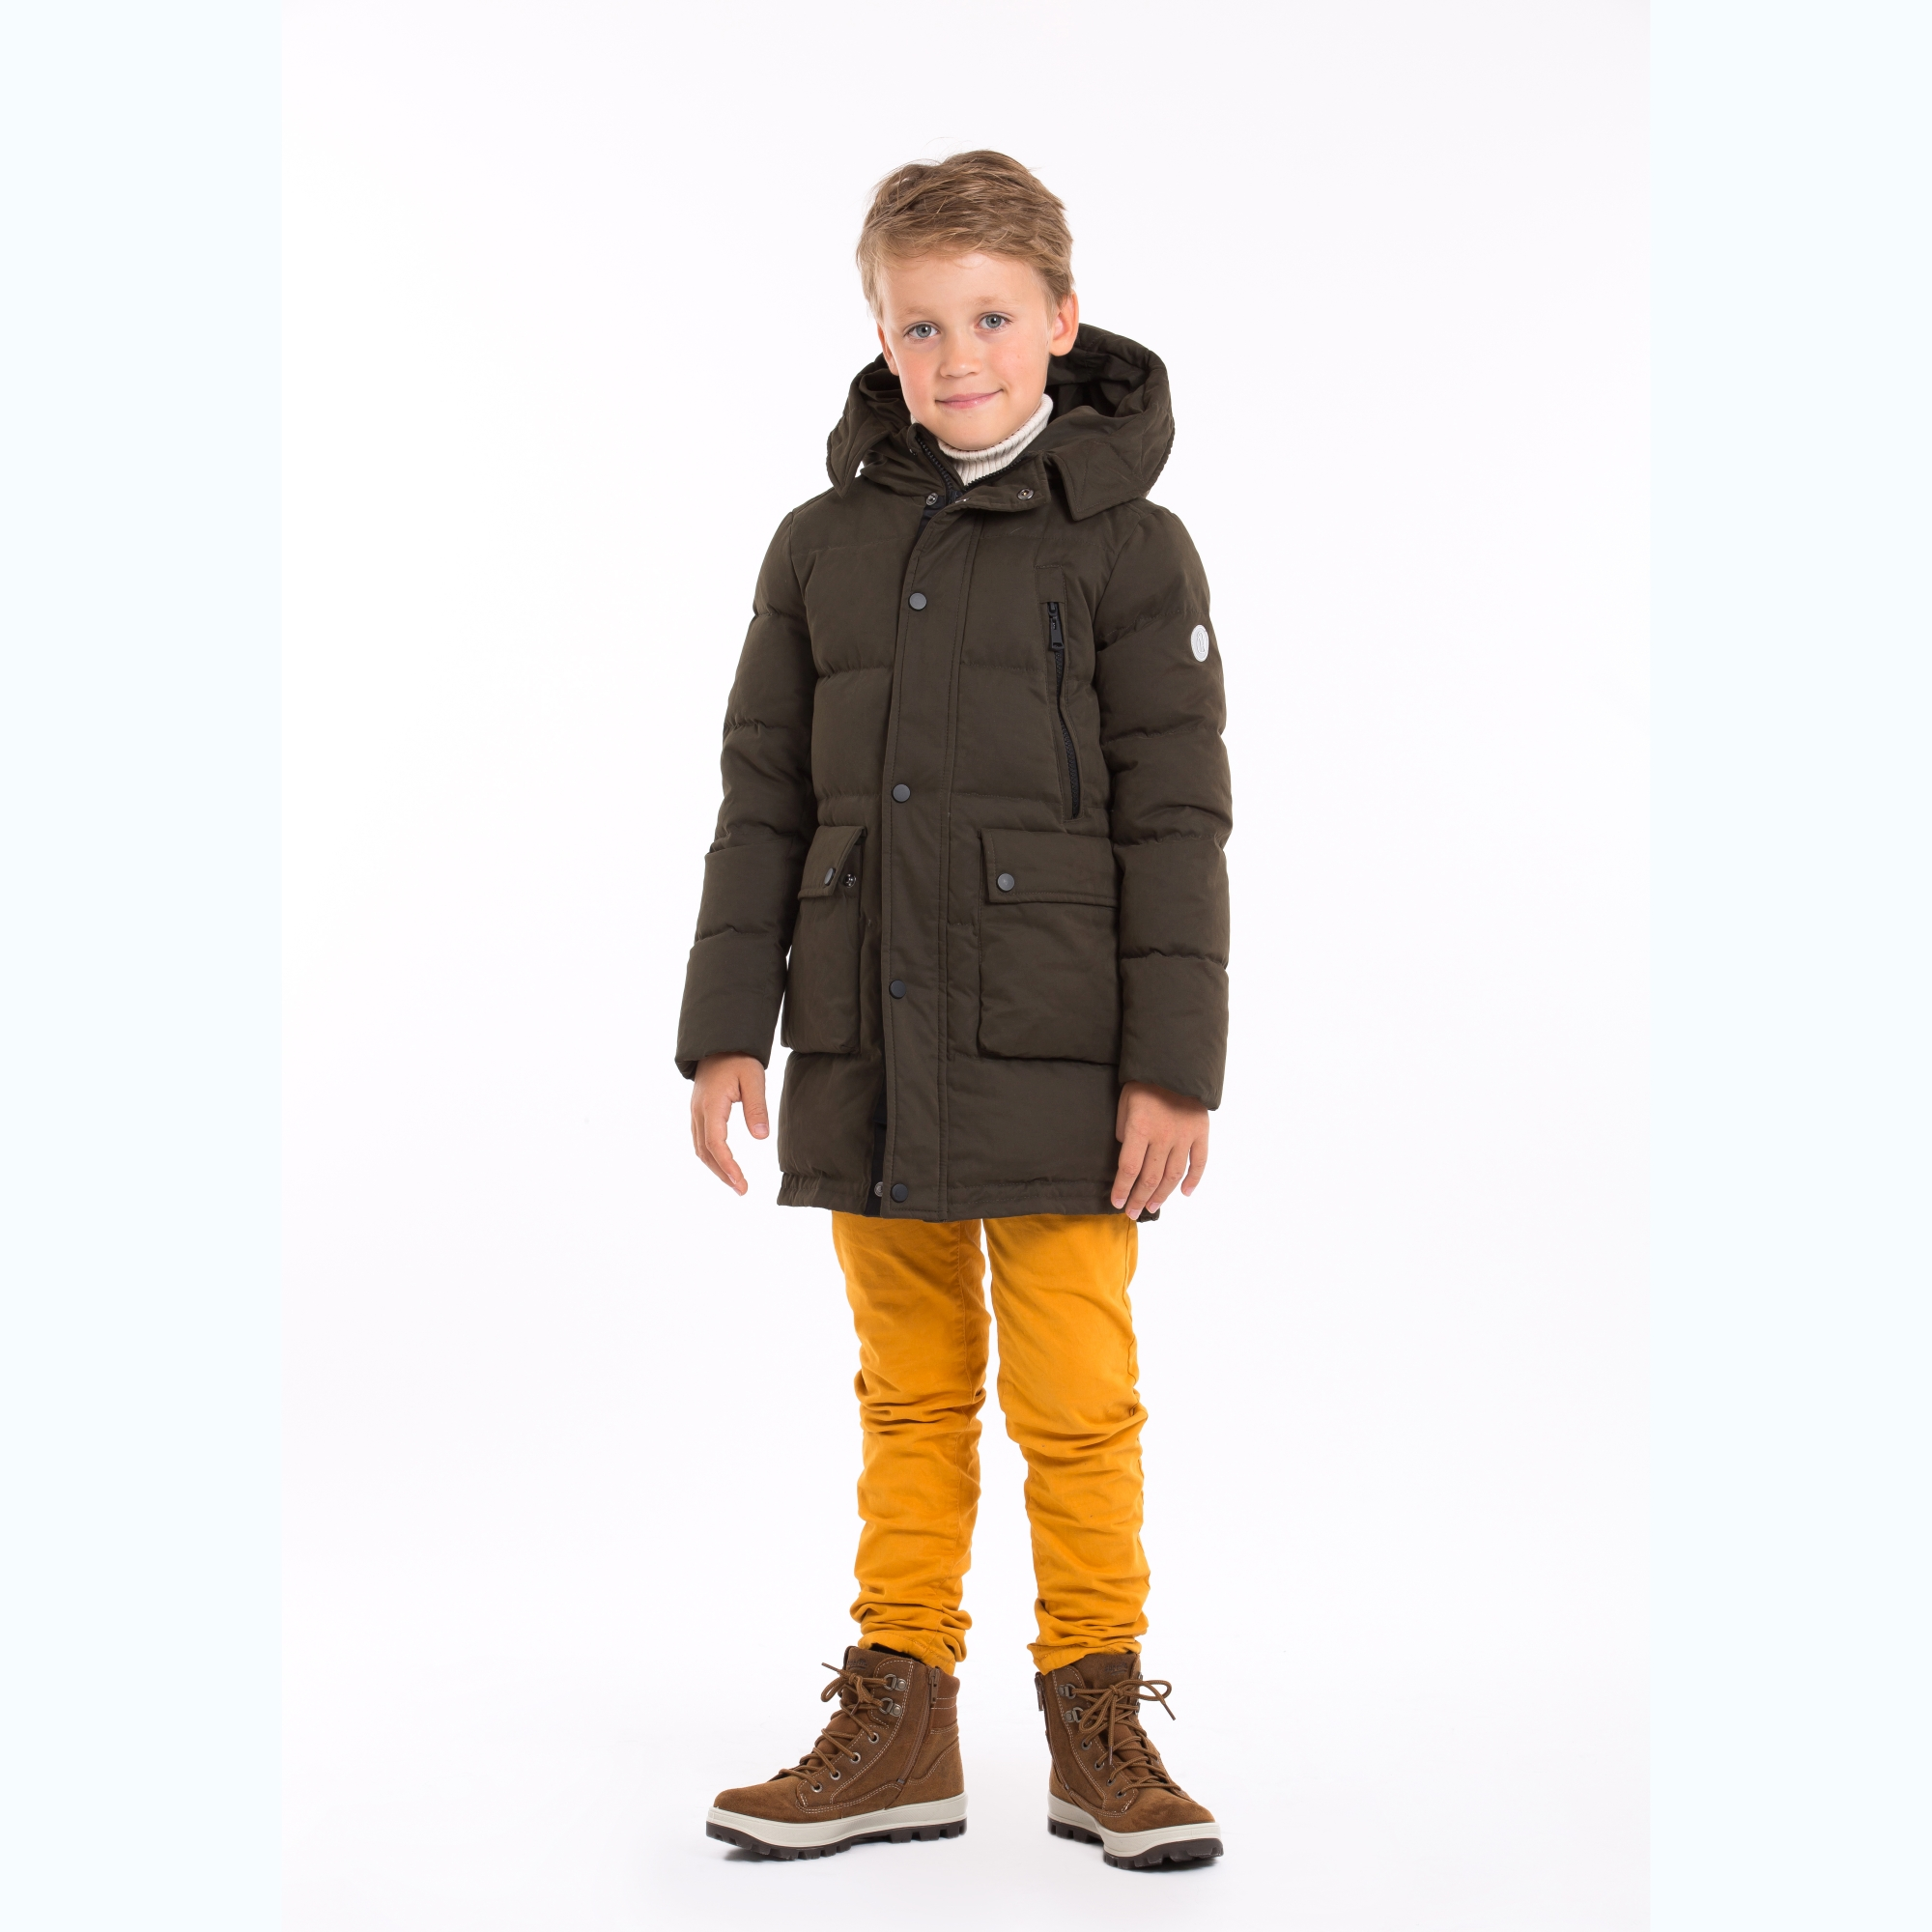 Pengu KIDS 90% down filling parka for boys and girls and as it is long and minimalistic, it suits to city or to the nature. Down parkas are very light to wear but then again very warm.